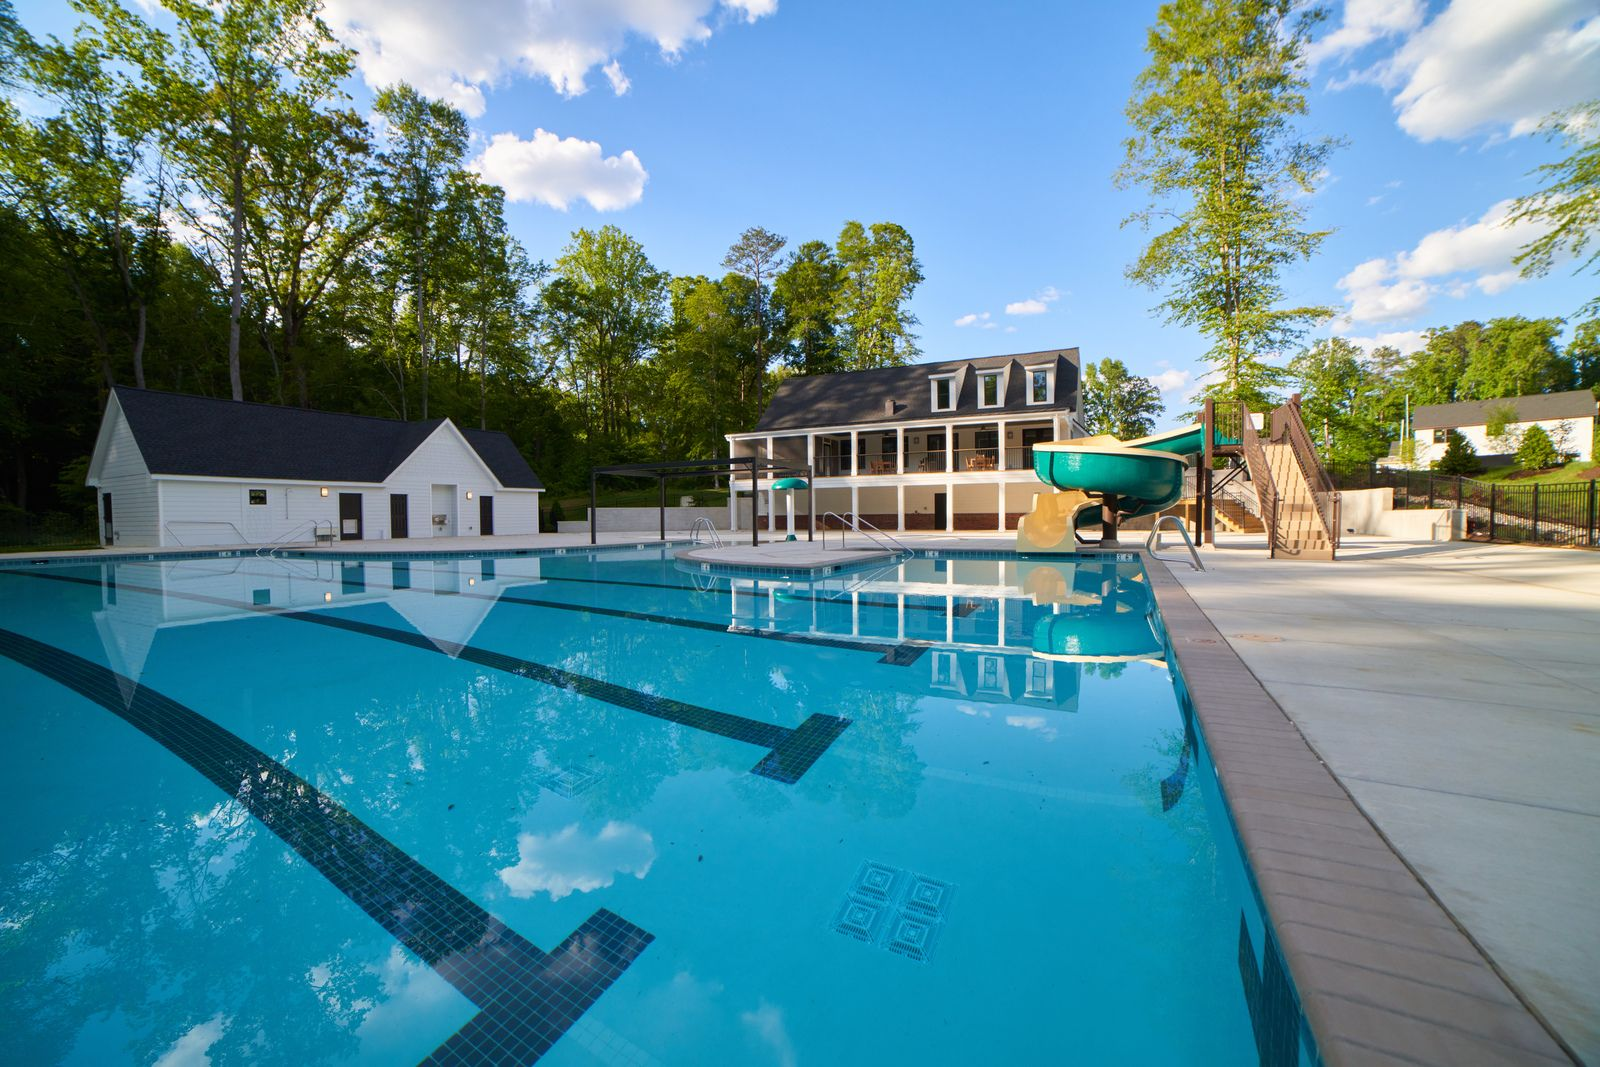 This Summer Is On Us For a Limited Time!:Our Magnolia Club pool & clubhouse will open Memorial Day Weekend! All homebuyers in May will receive access this summer! Imagine spending days poolside or having fun on the slide!Schedule a visit!